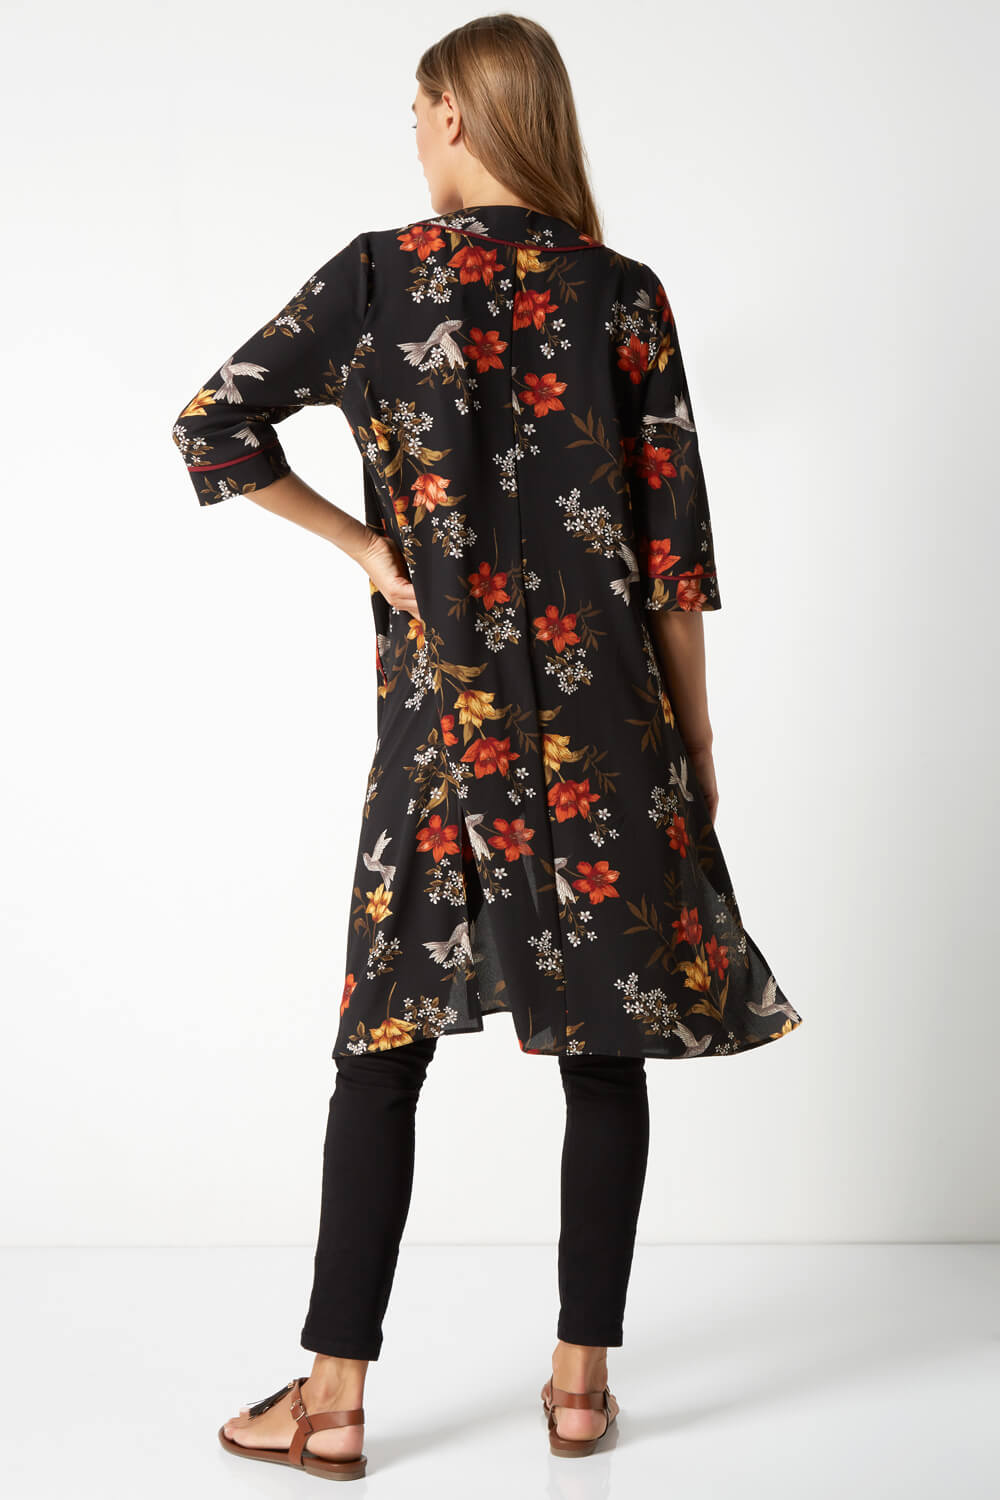 Roman-Originals-Women-039-s-Floral-Longline-Jacket-Kimono-in-Multi-Sizes-10-20 thumbnail 8